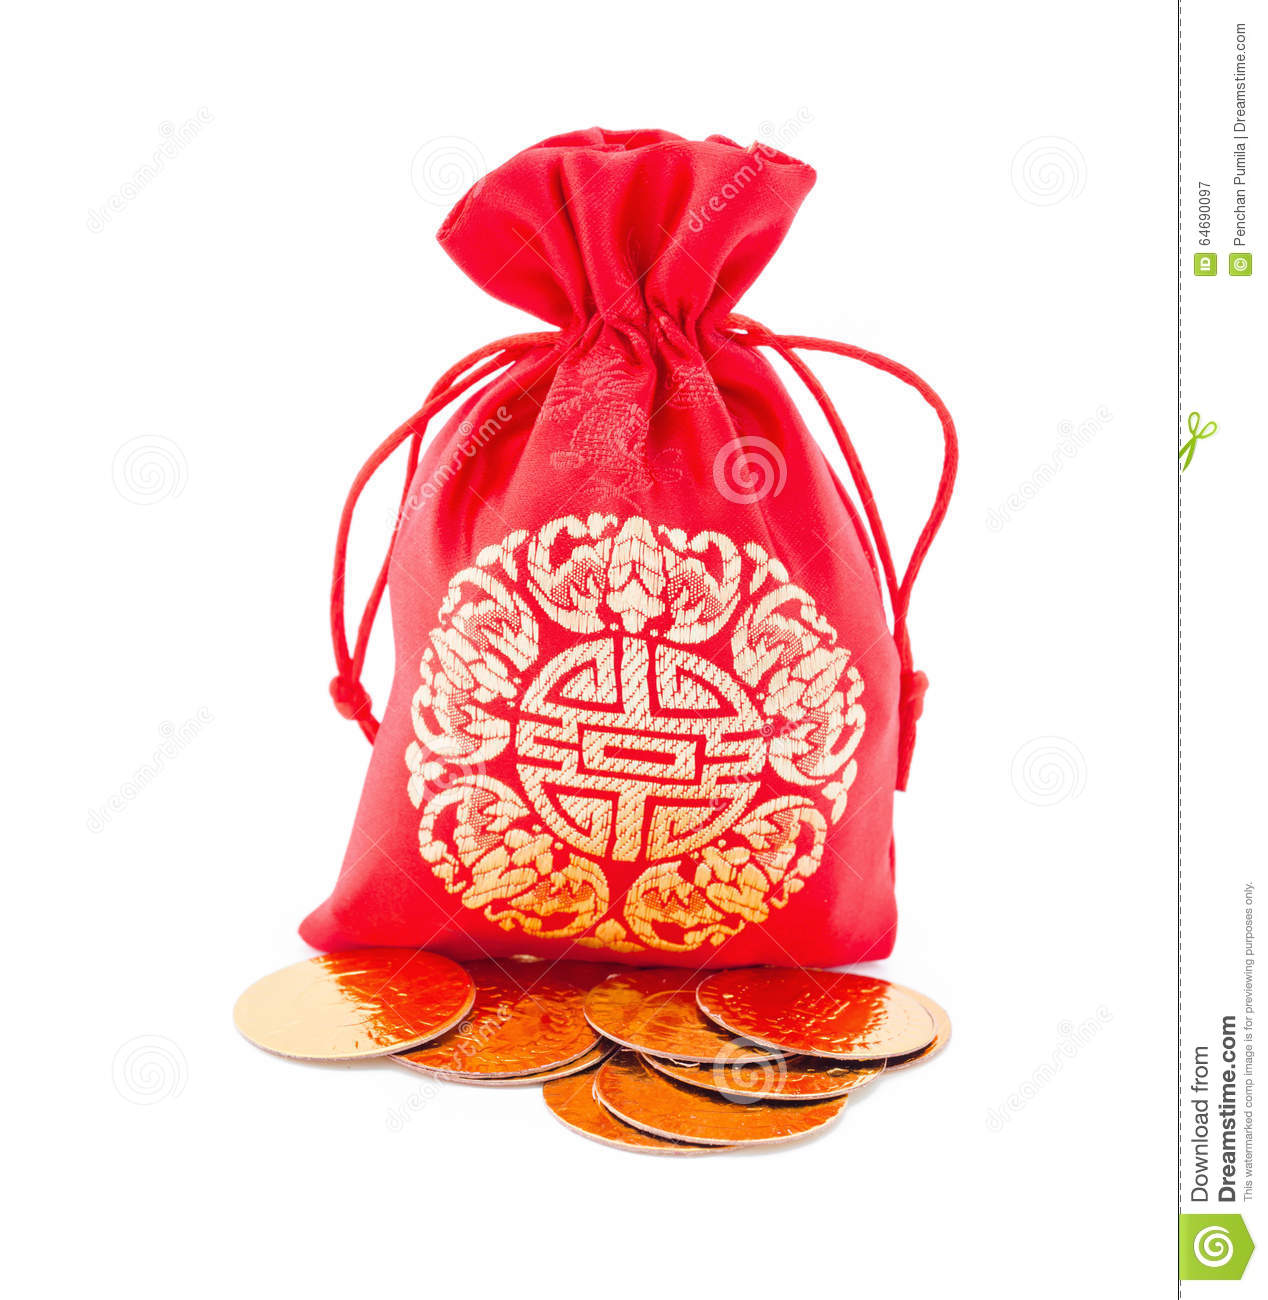 chinese new year gift bag and gold ingot ornament - Gifts For Chinese New Year